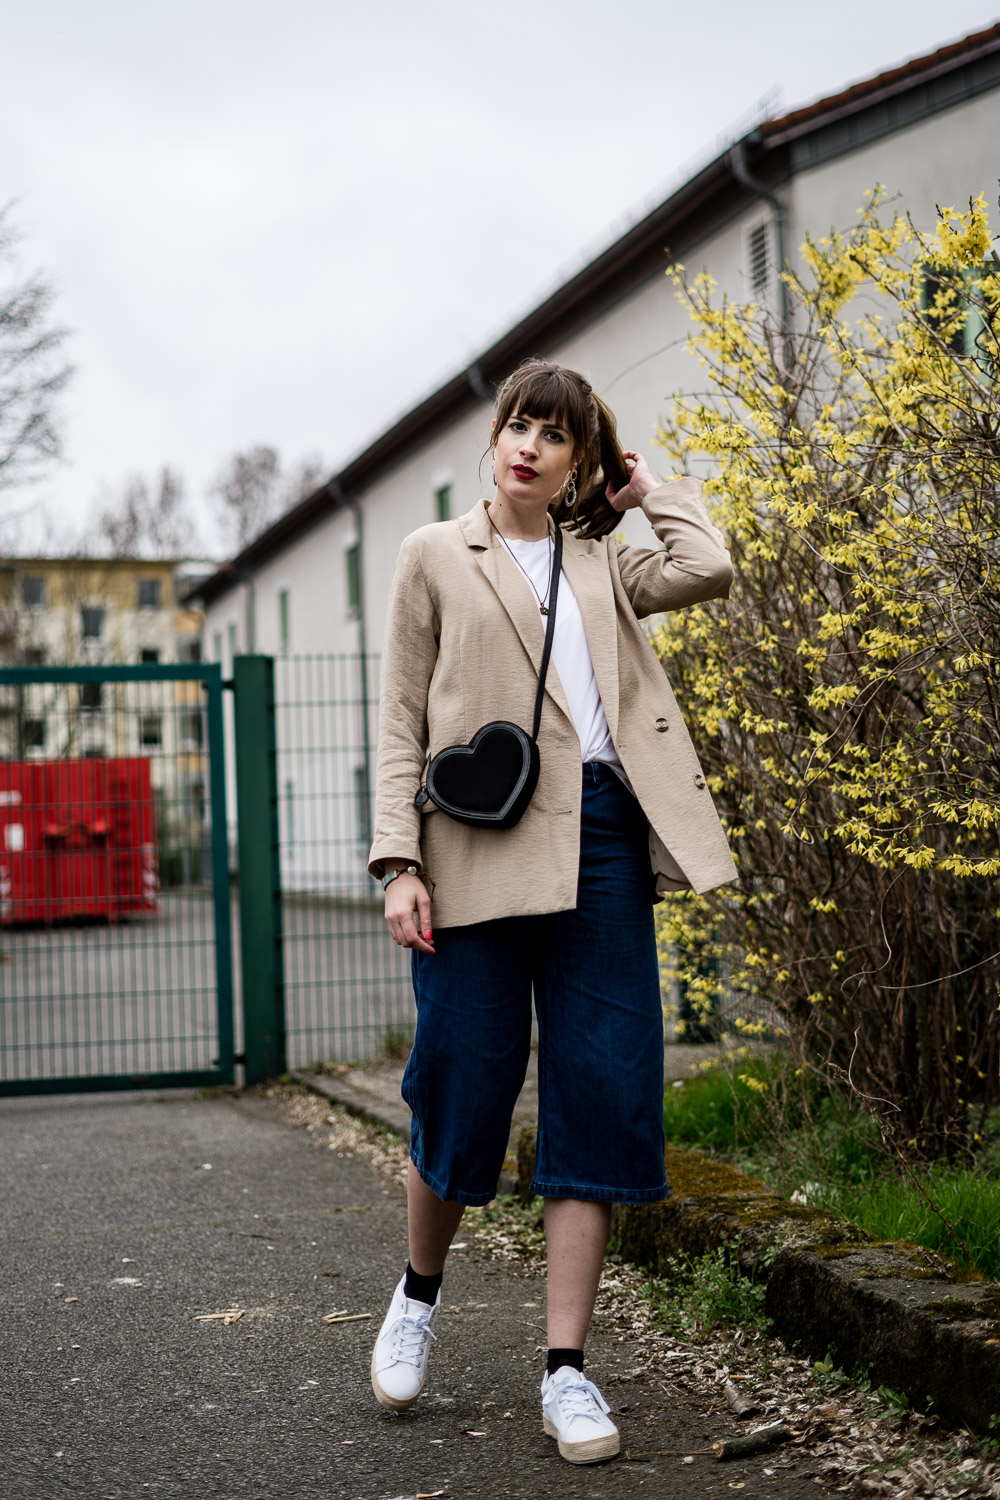 Jeans Culotte Outfit